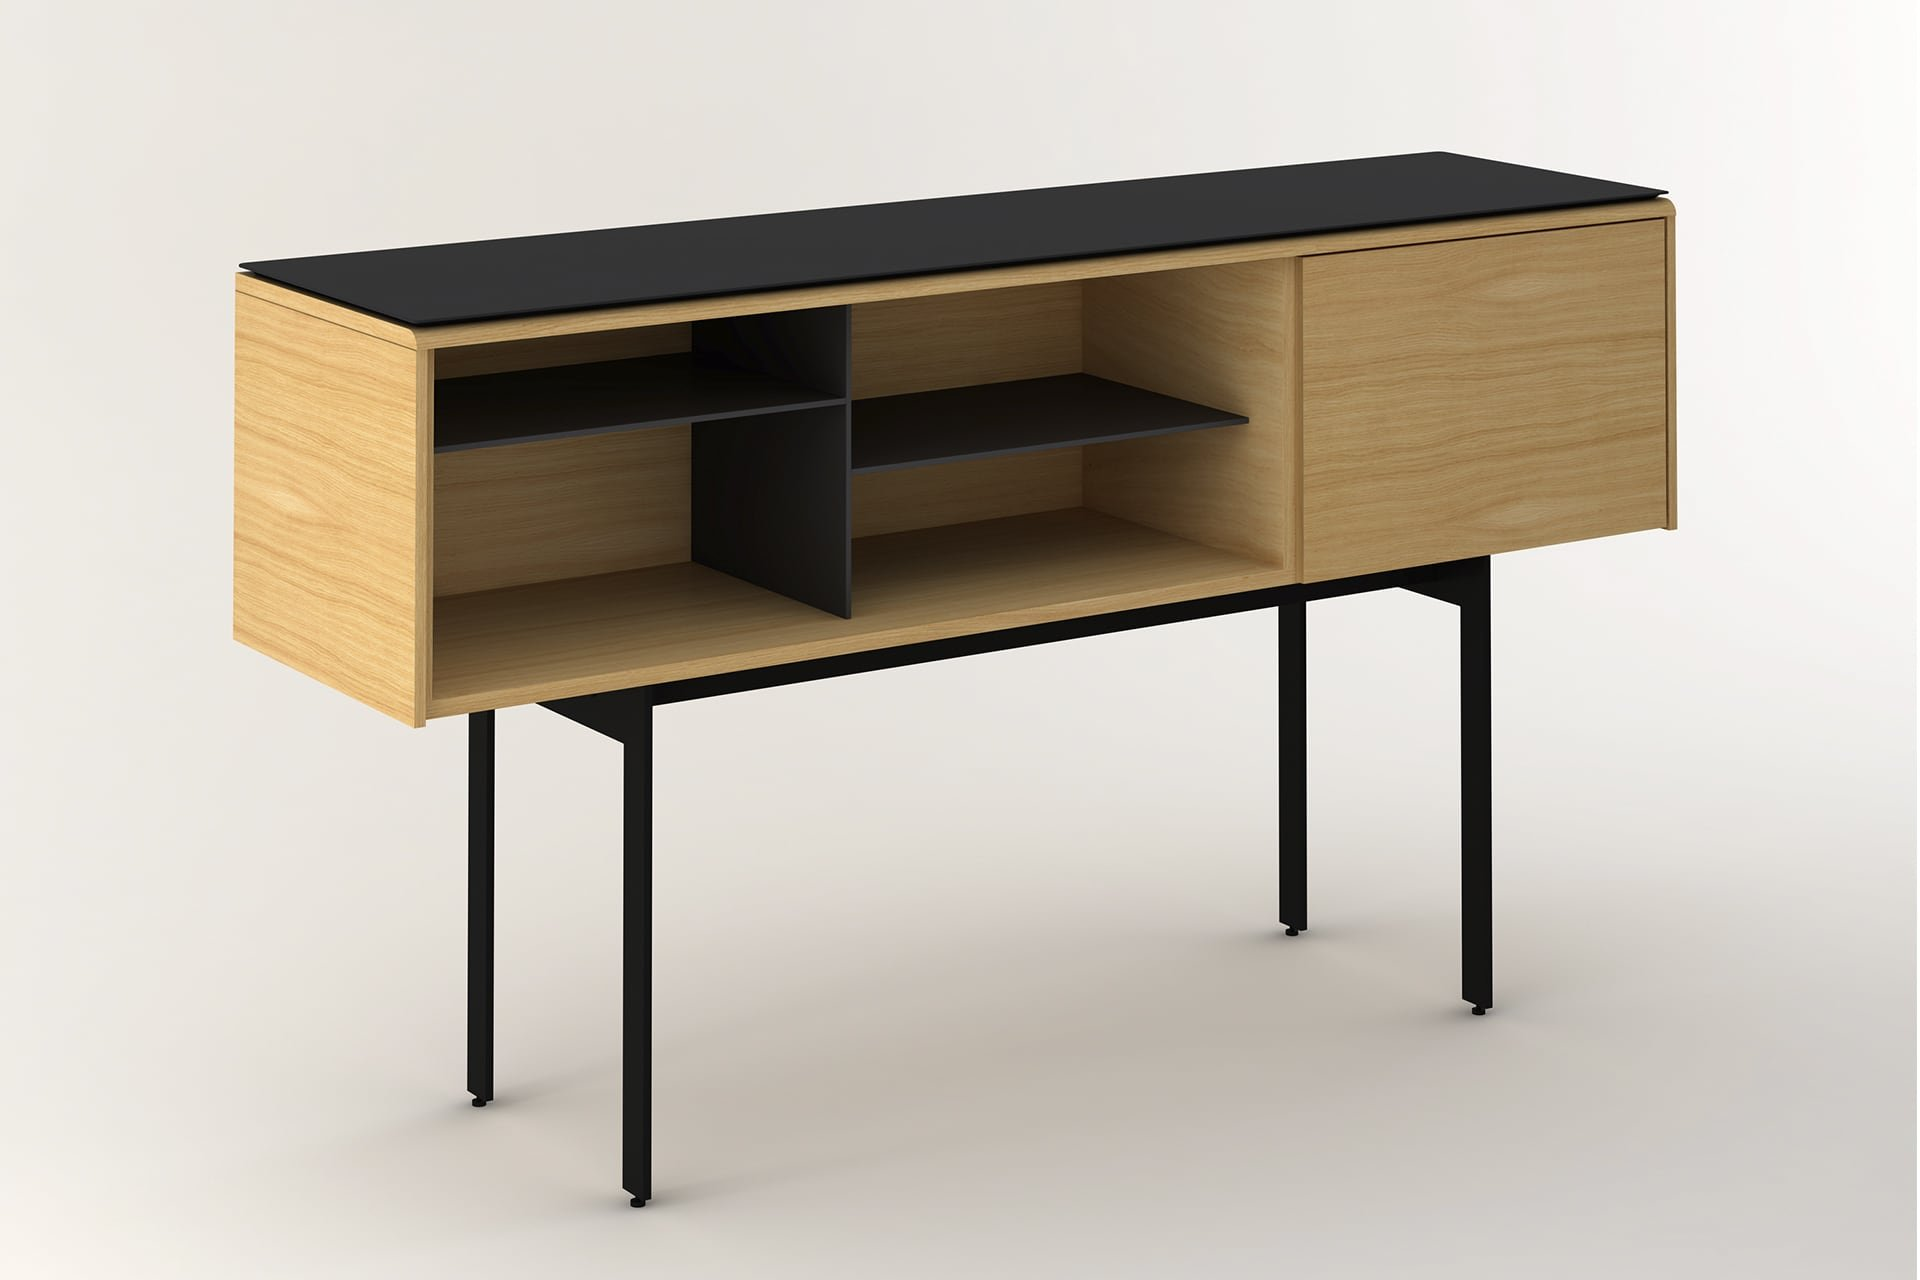 Malmo Sideboard cabinet from Punt Mobles, designed by Mario Ruiz